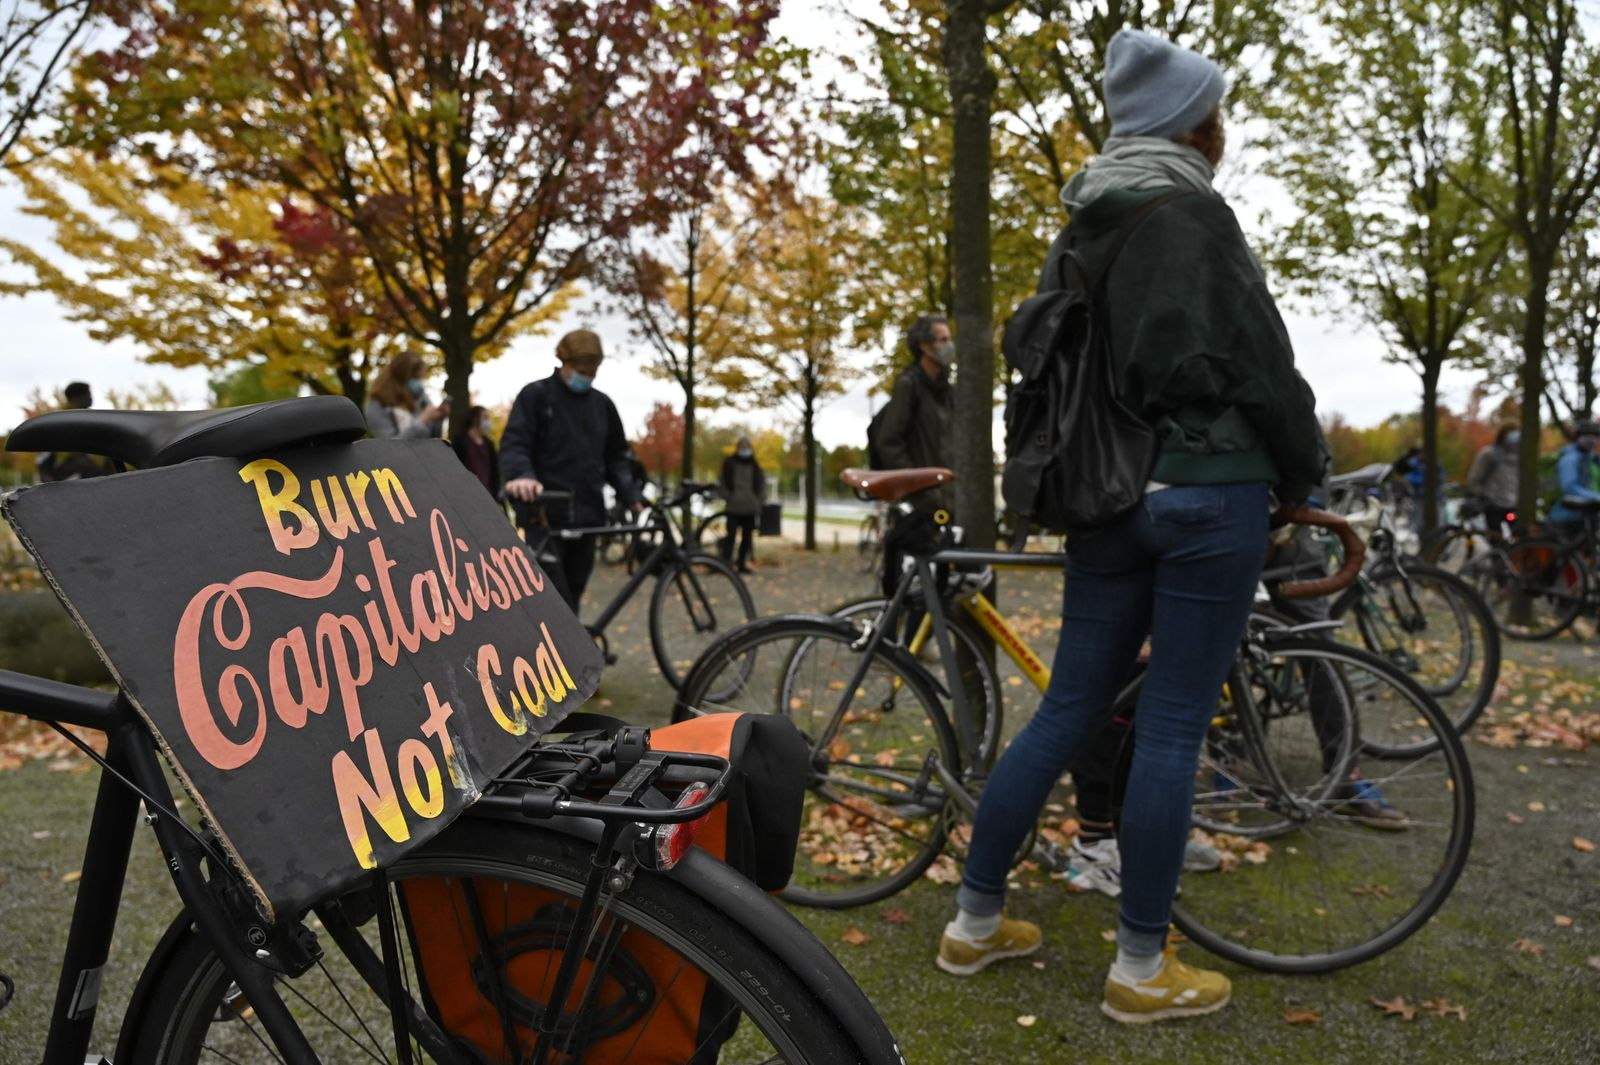 GERMANY-POLITICS-CLIMATE-DEMONSTRATION-FRIDAYS-FOR-FUTURE